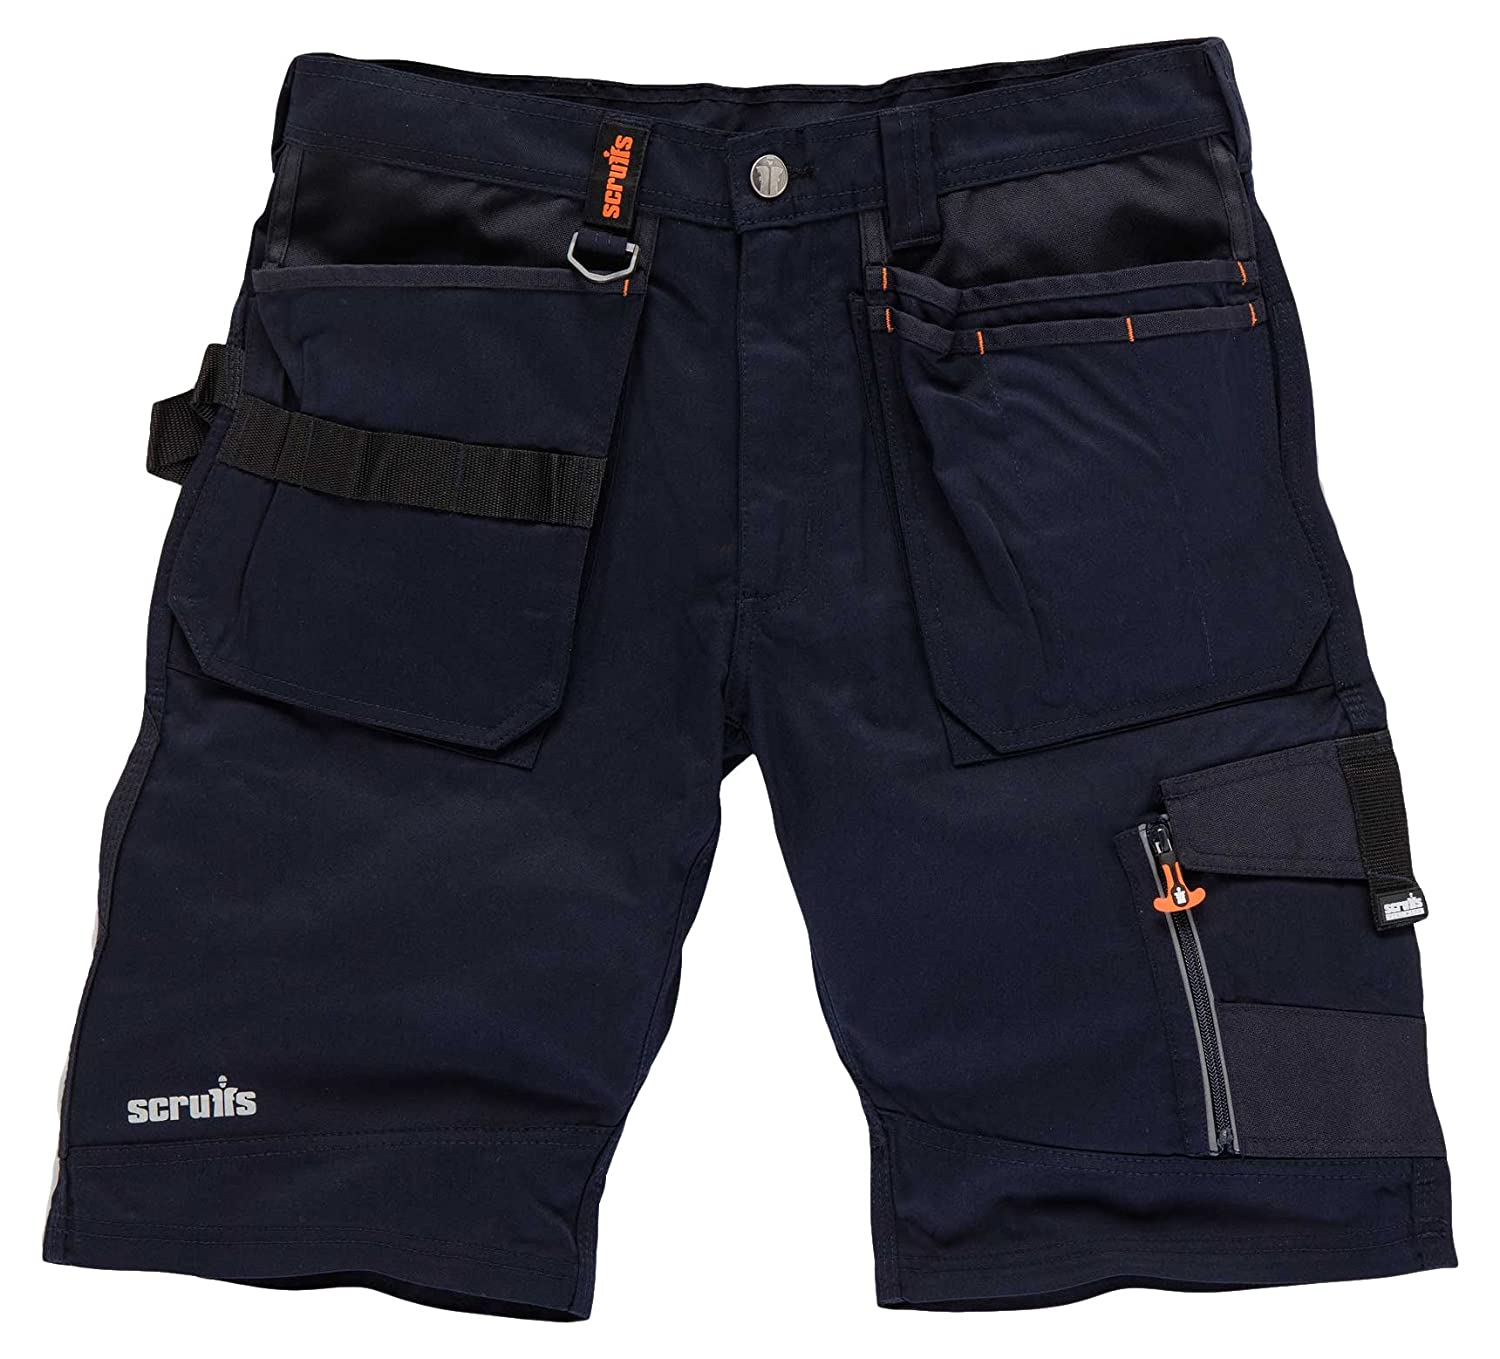 Scruffs - Trade Short pour homme